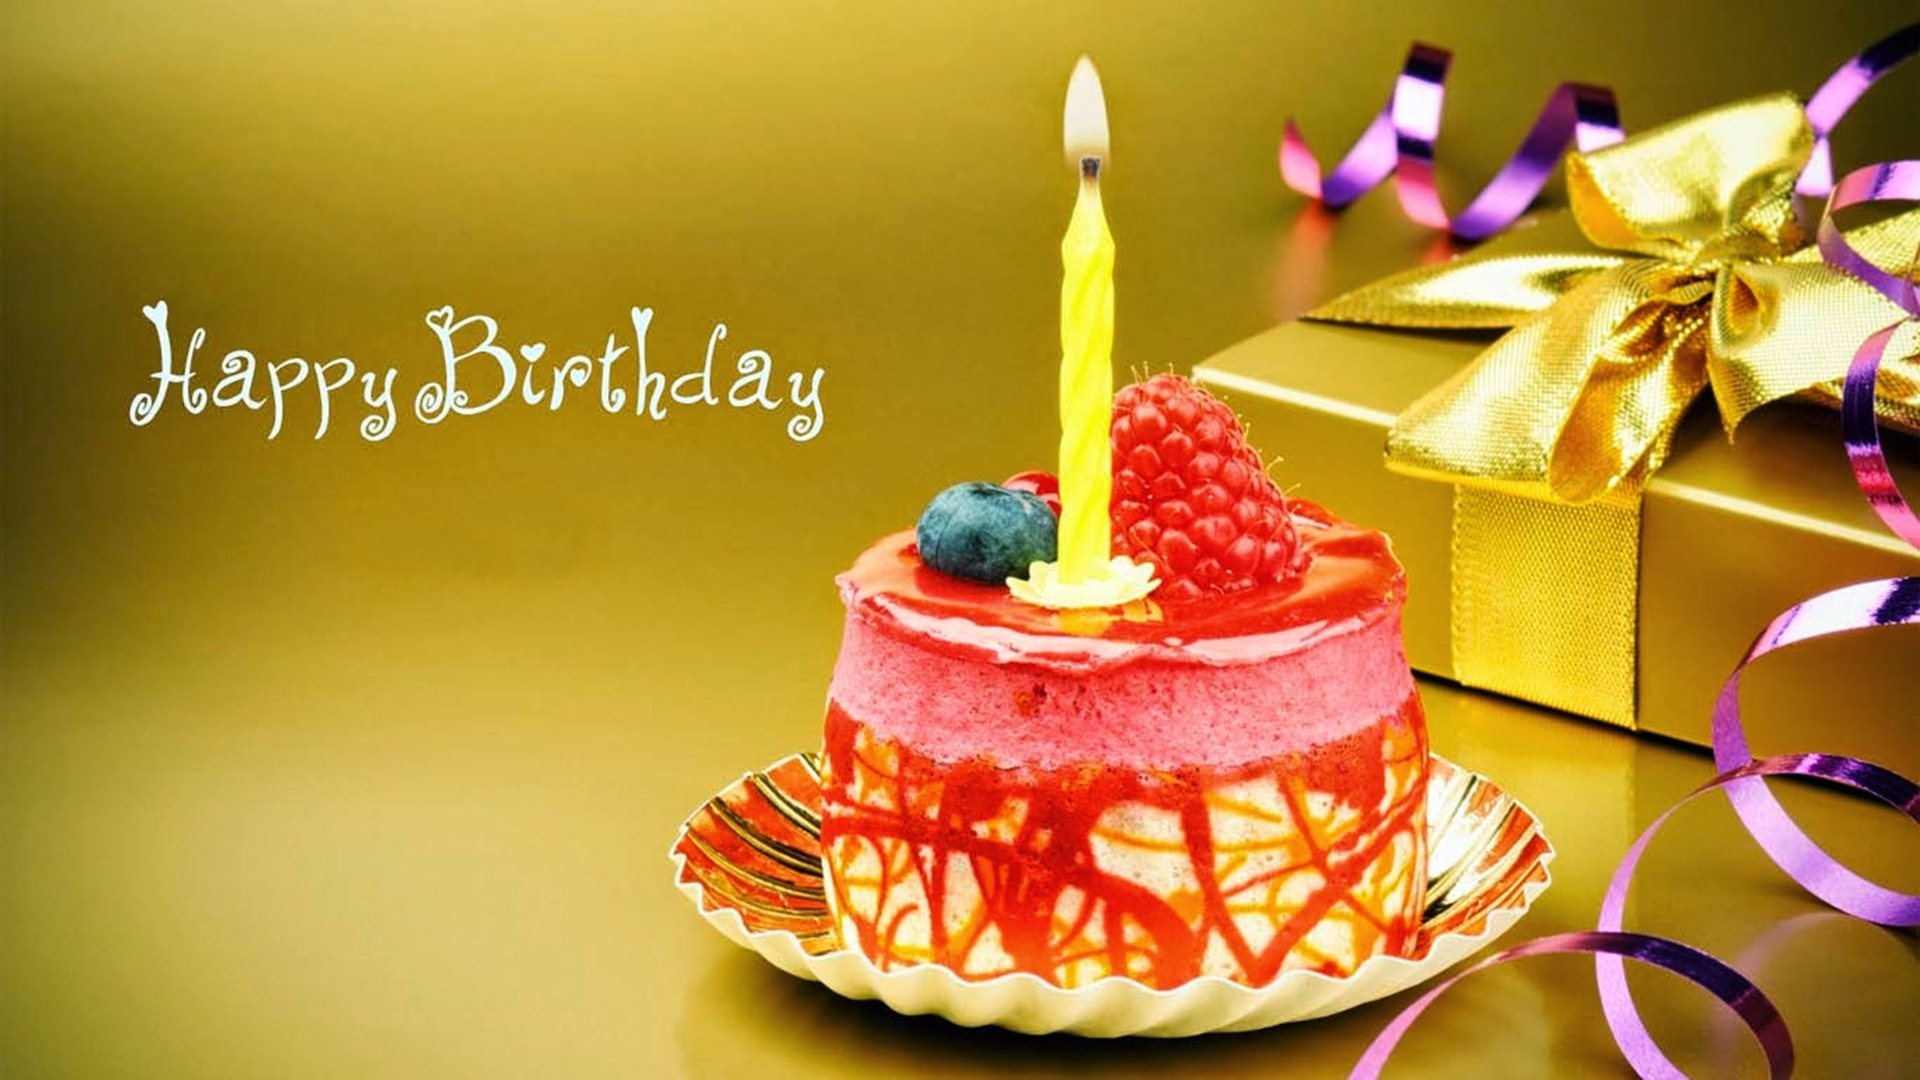 birthday wishes background wallpaper ; Birthday-Wishes-HD-Wallpaper-03570